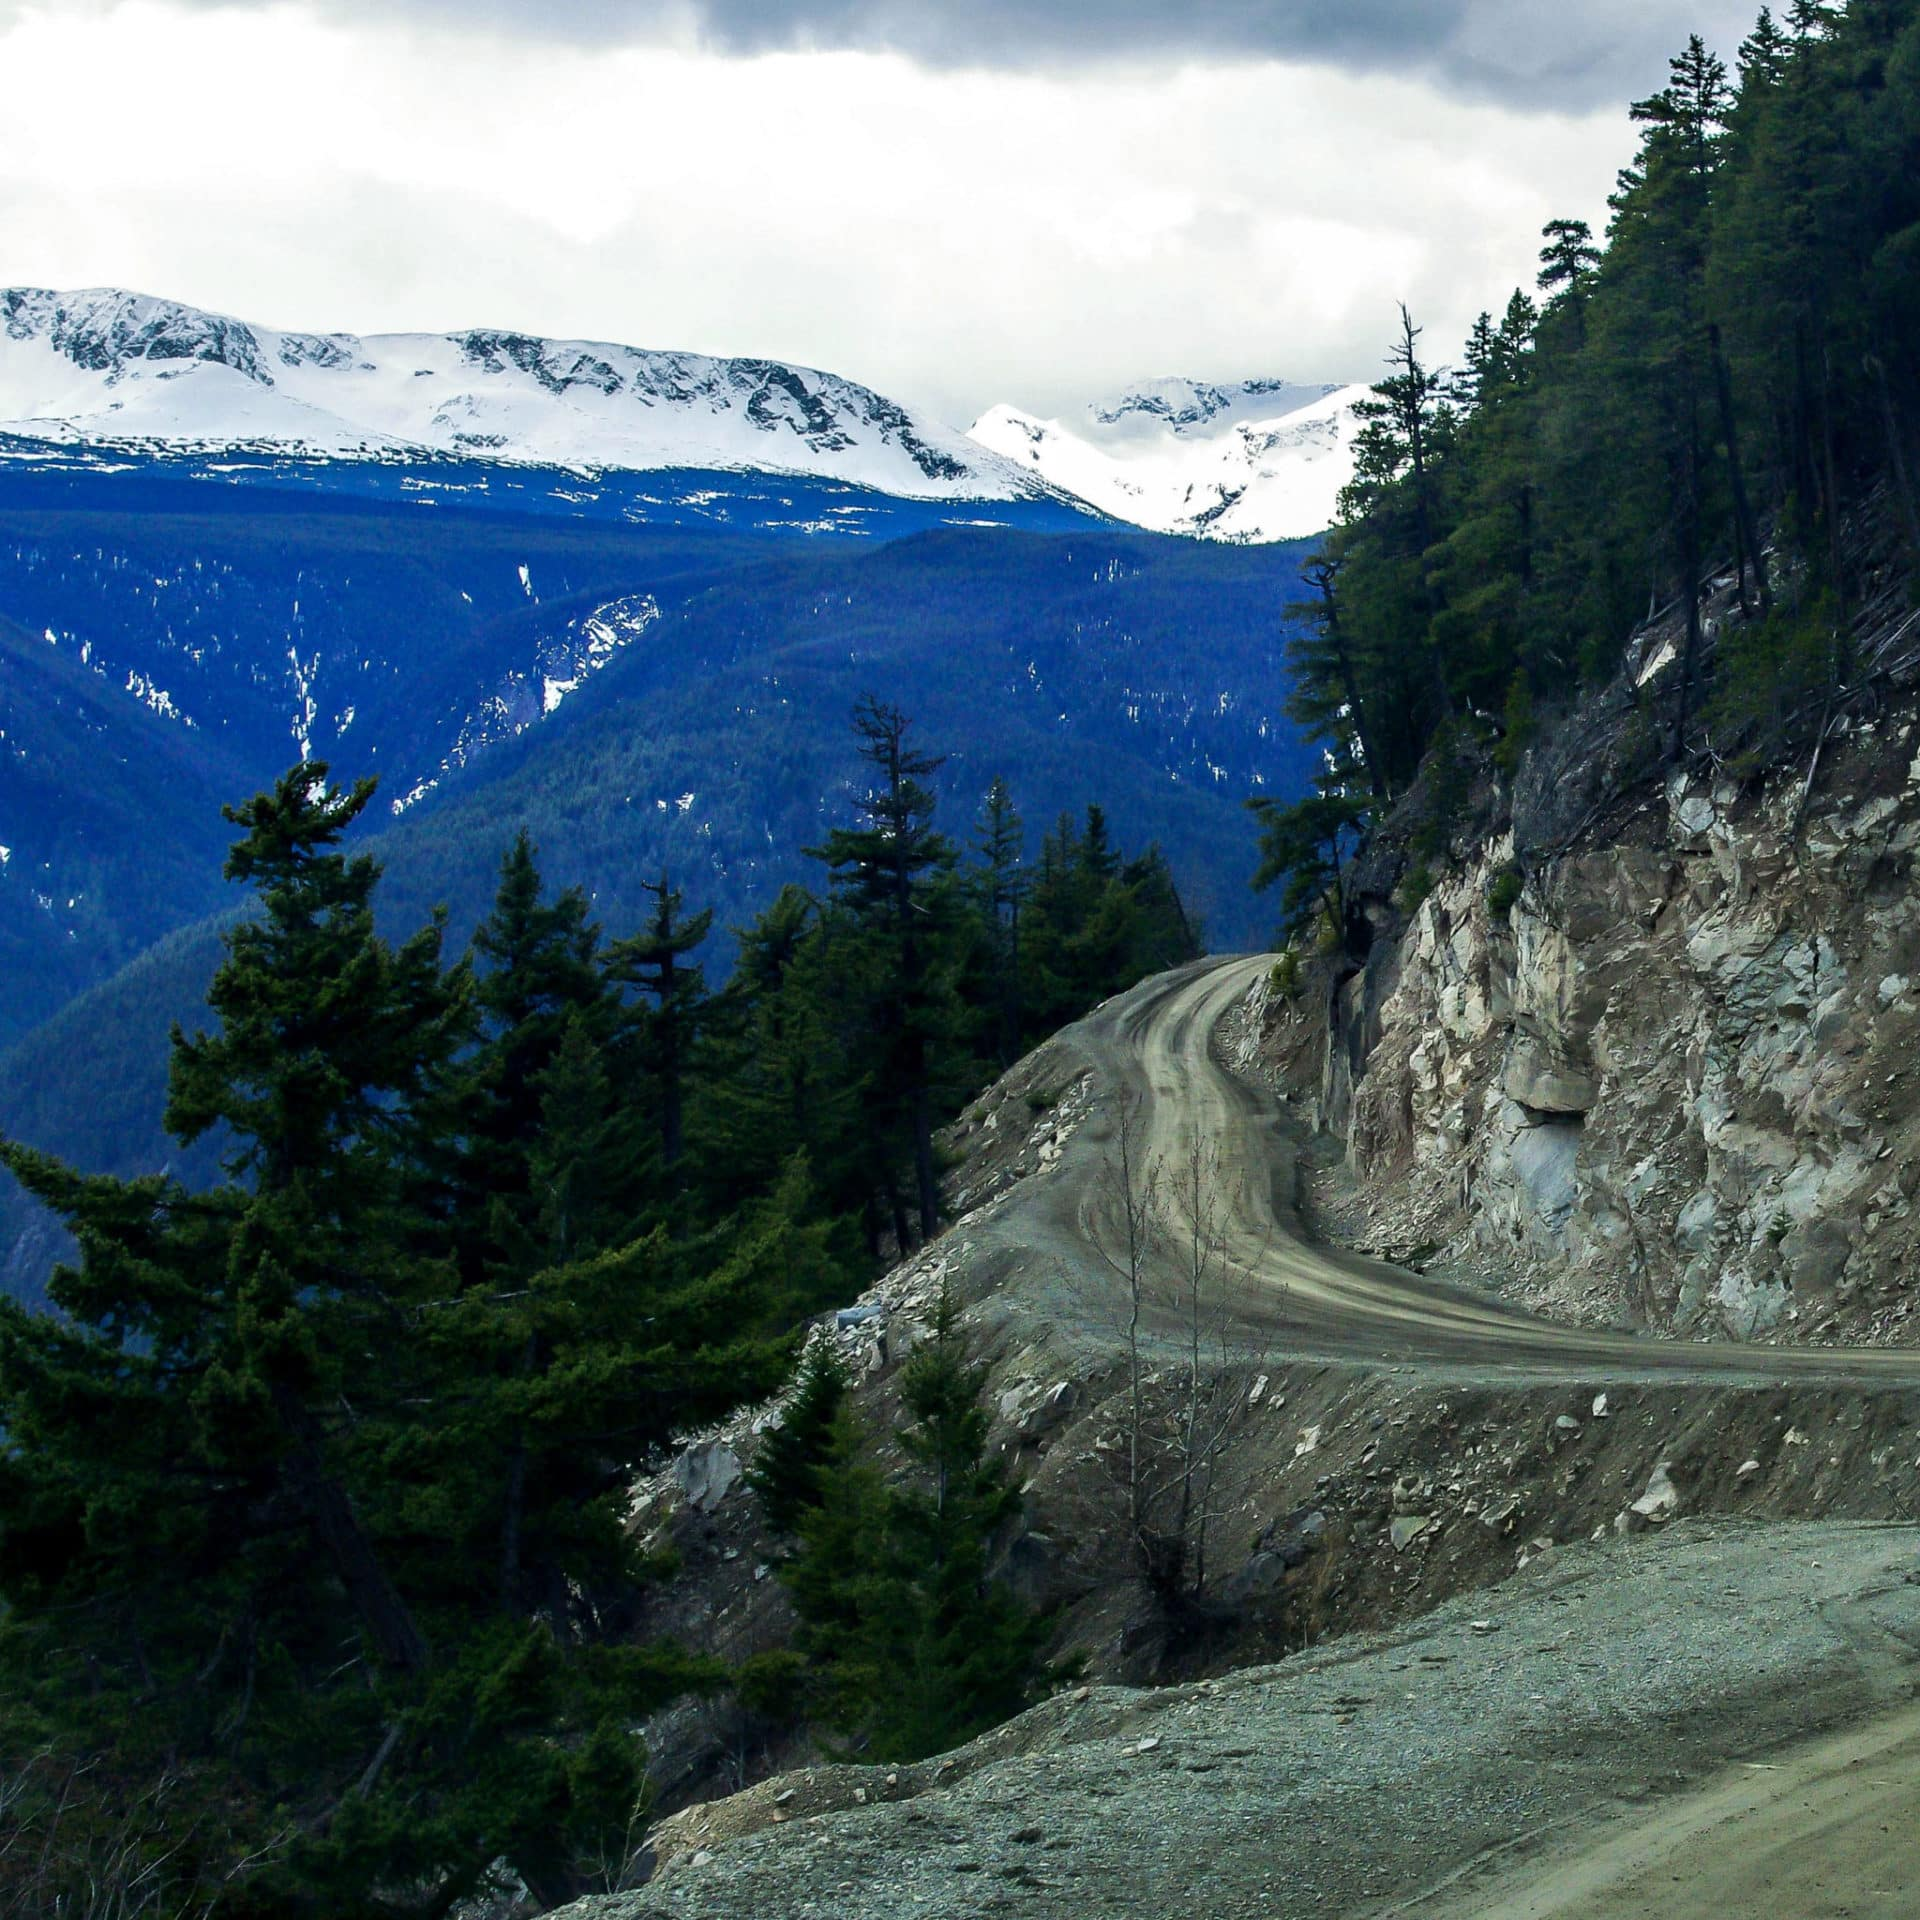 Vancovuer Island has some of the best hidden dirt roads in Canada for adventure motorcycle riding and tours